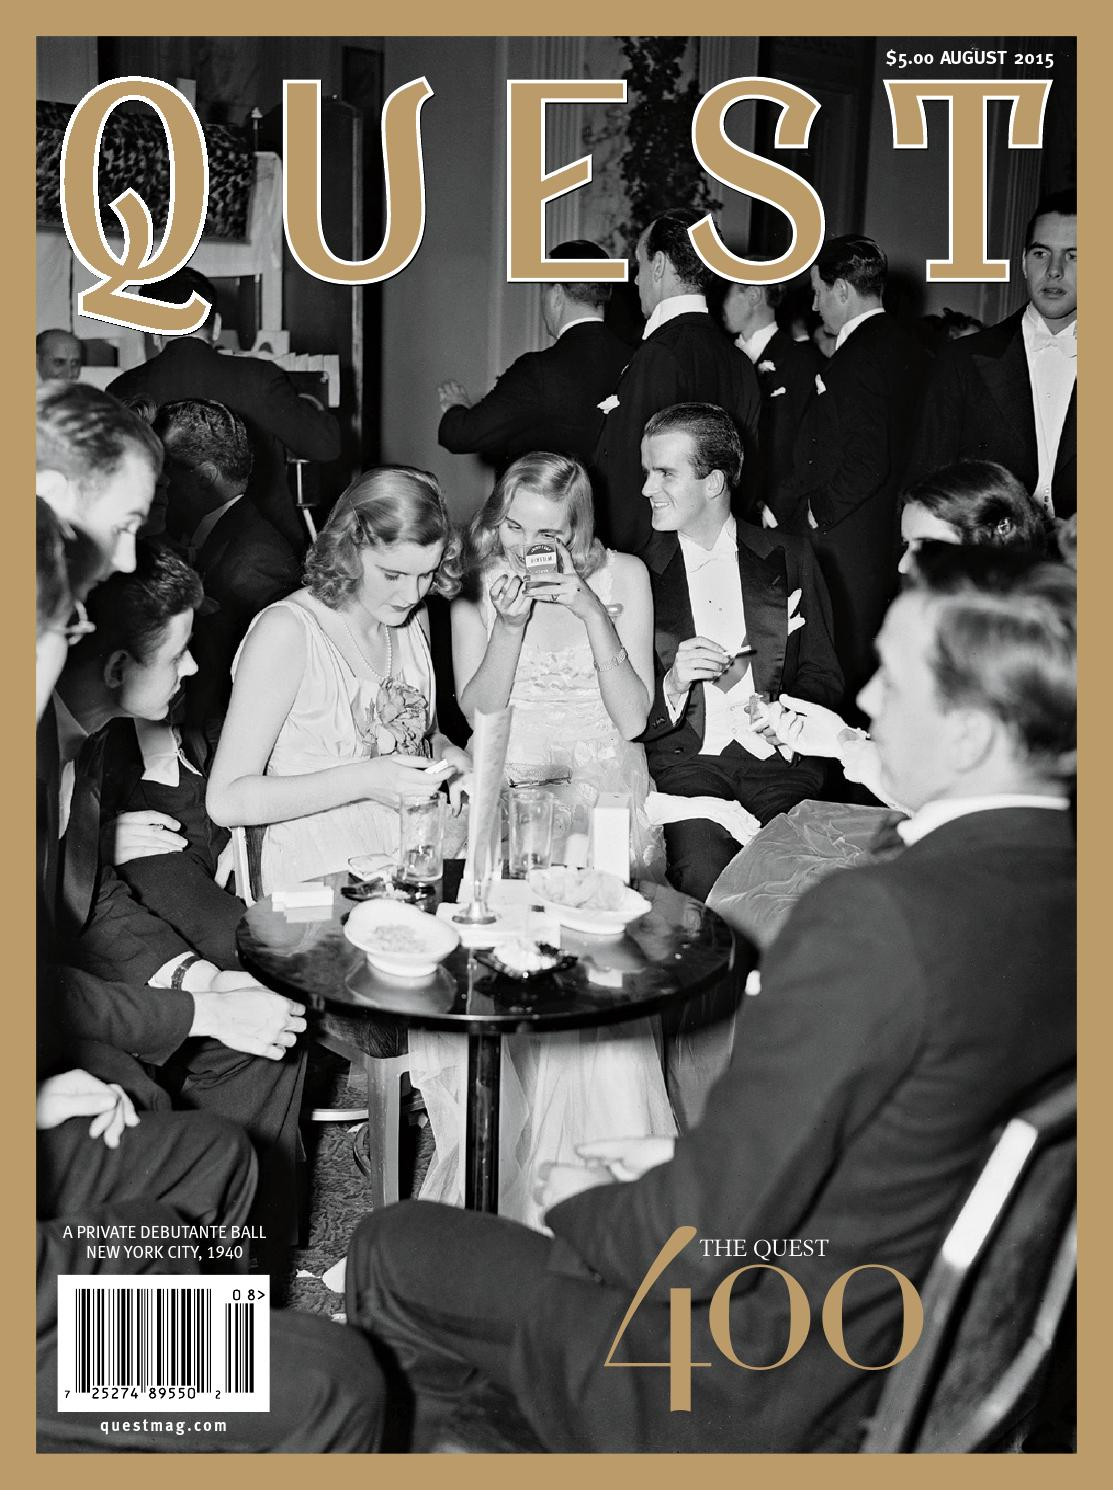 Quest august 2015 by quest magazine issuu publicscrutiny Choice Image